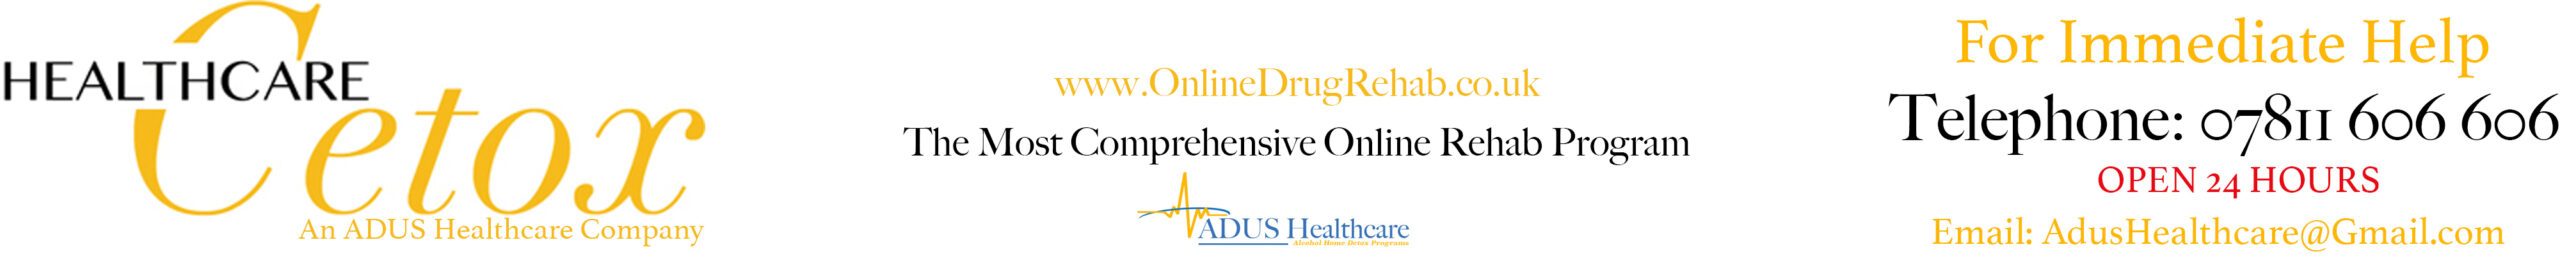 Online Drug Rehab Programme Sinclair Method